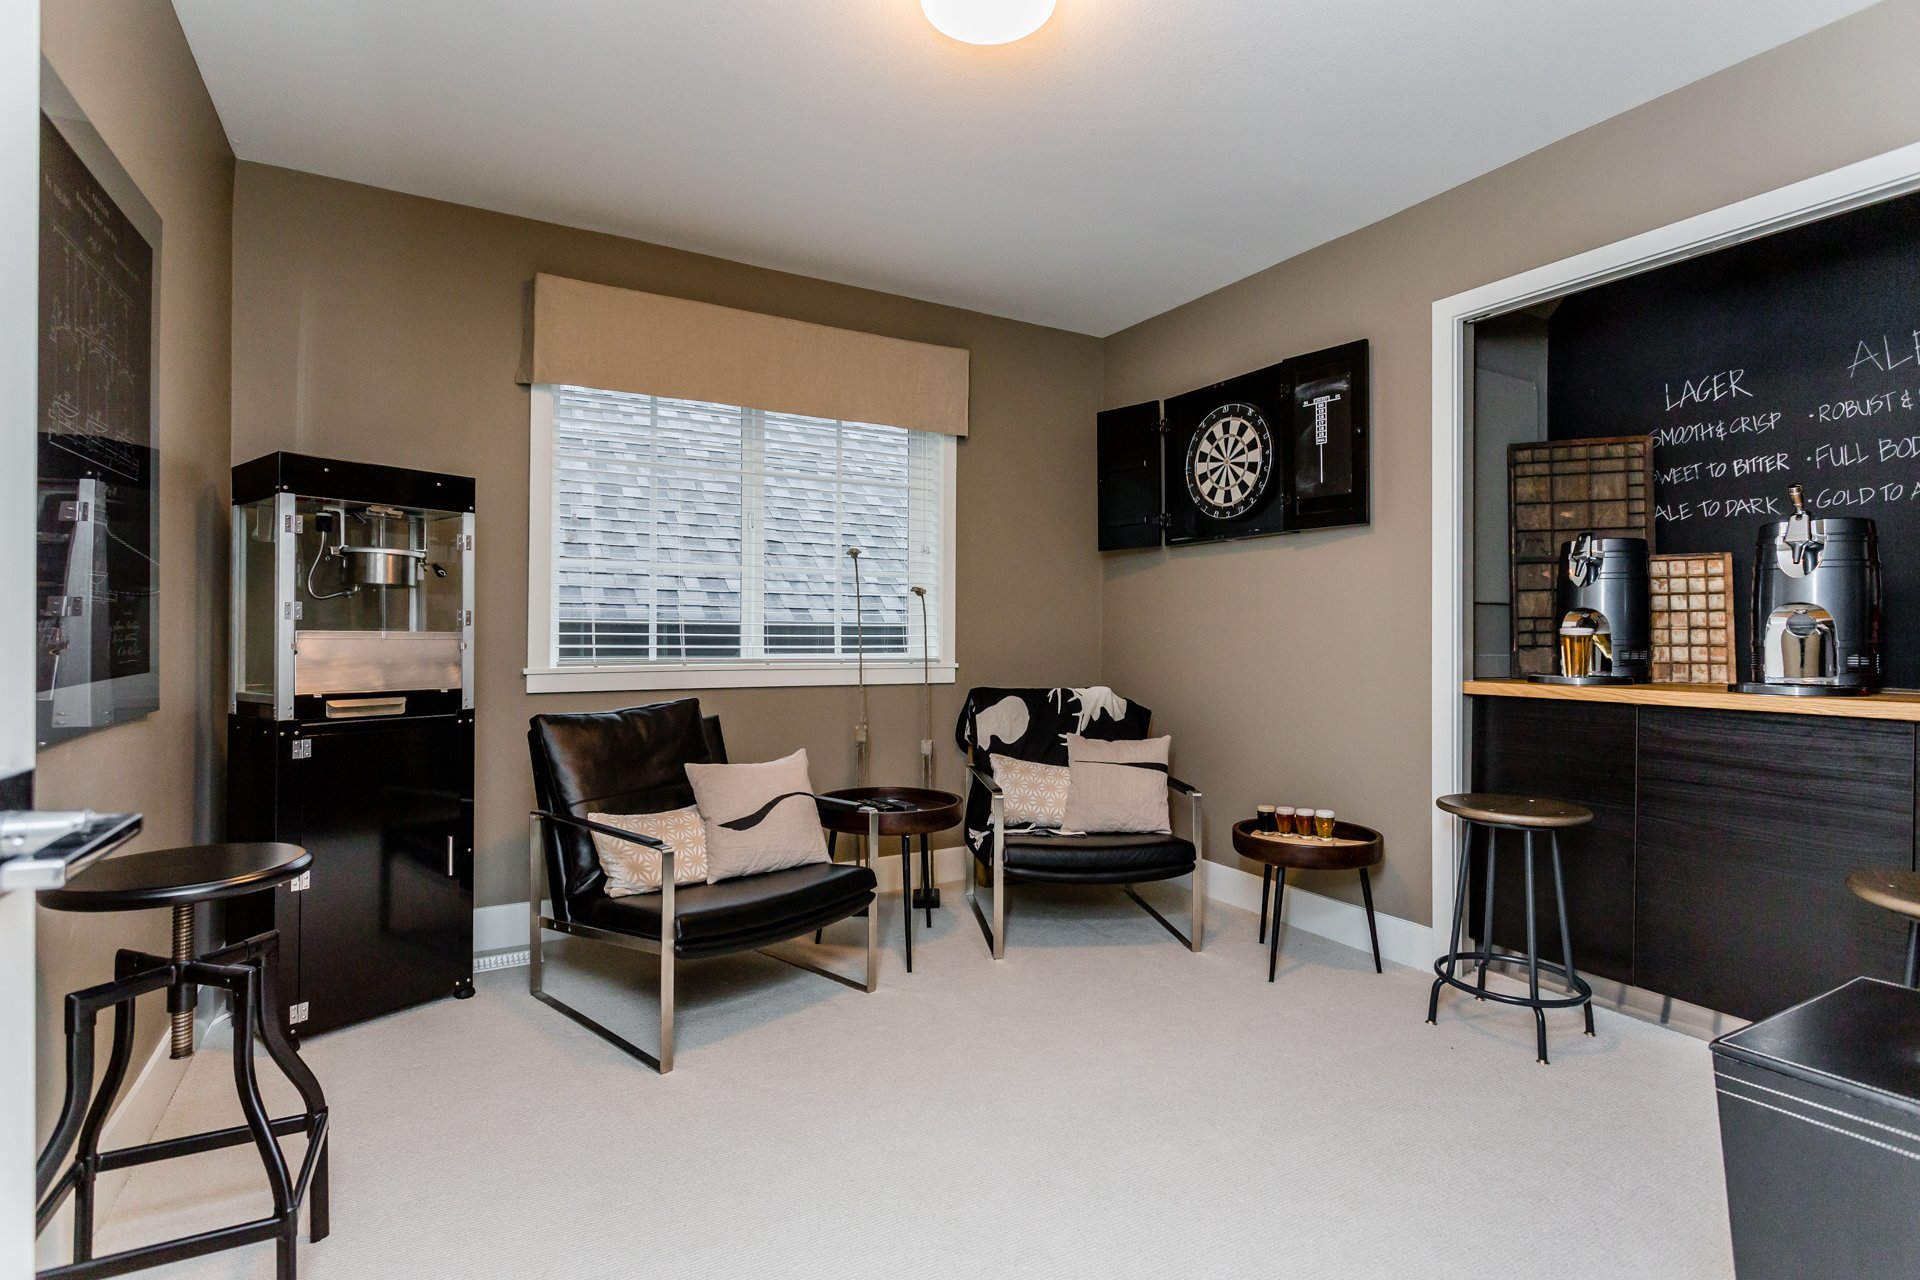 """Photo 30: Photos: 8 8217 204B Street in Langley: Willoughby Heights Townhouse for sale in """"EVERLY GREEN"""" : MLS®# R2236678"""